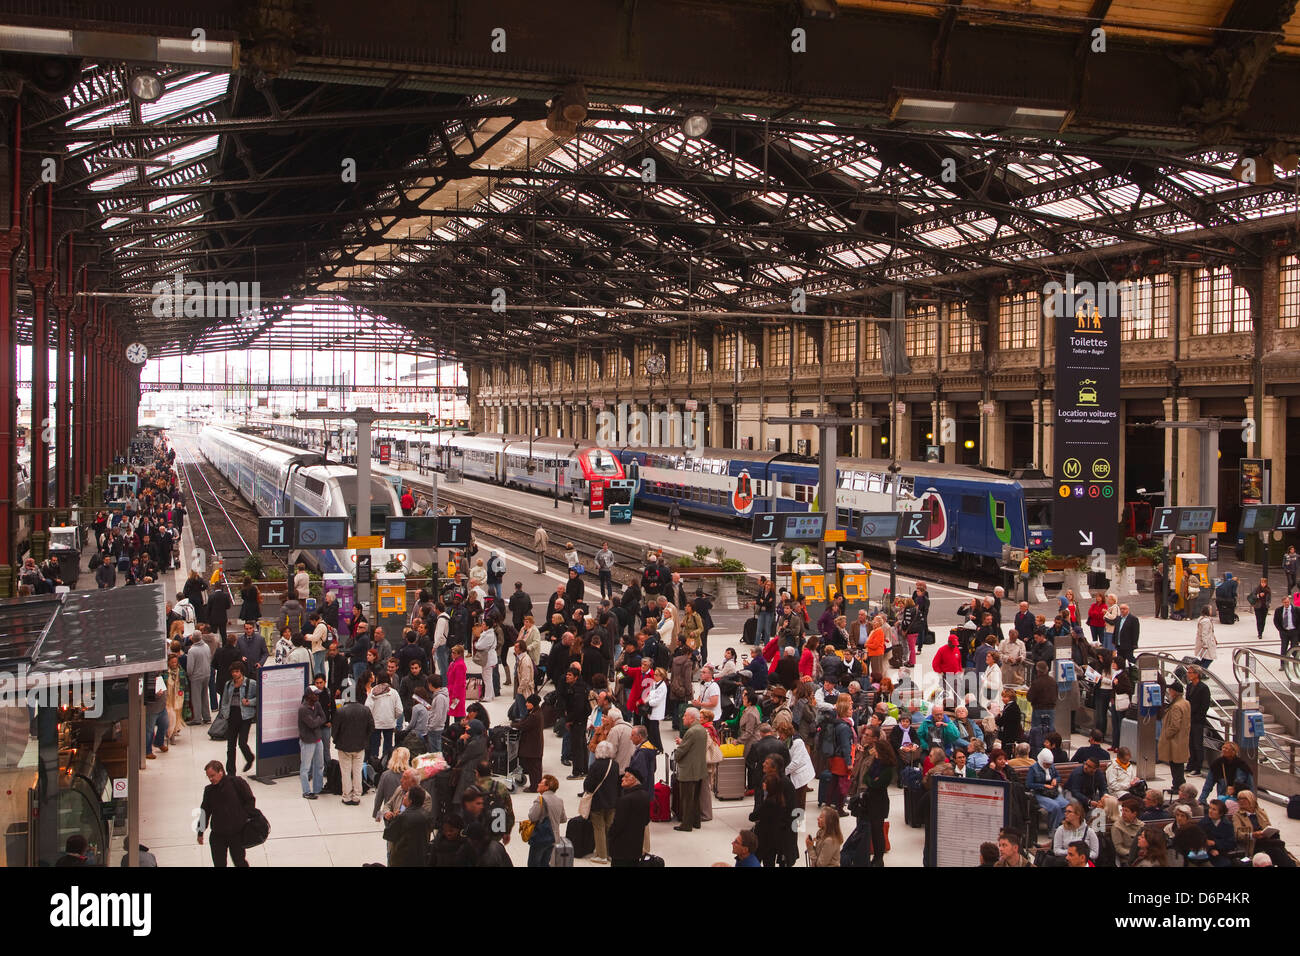 Crowds of people in the Gare de Lyon, Paris, France, Europe - Stock Image